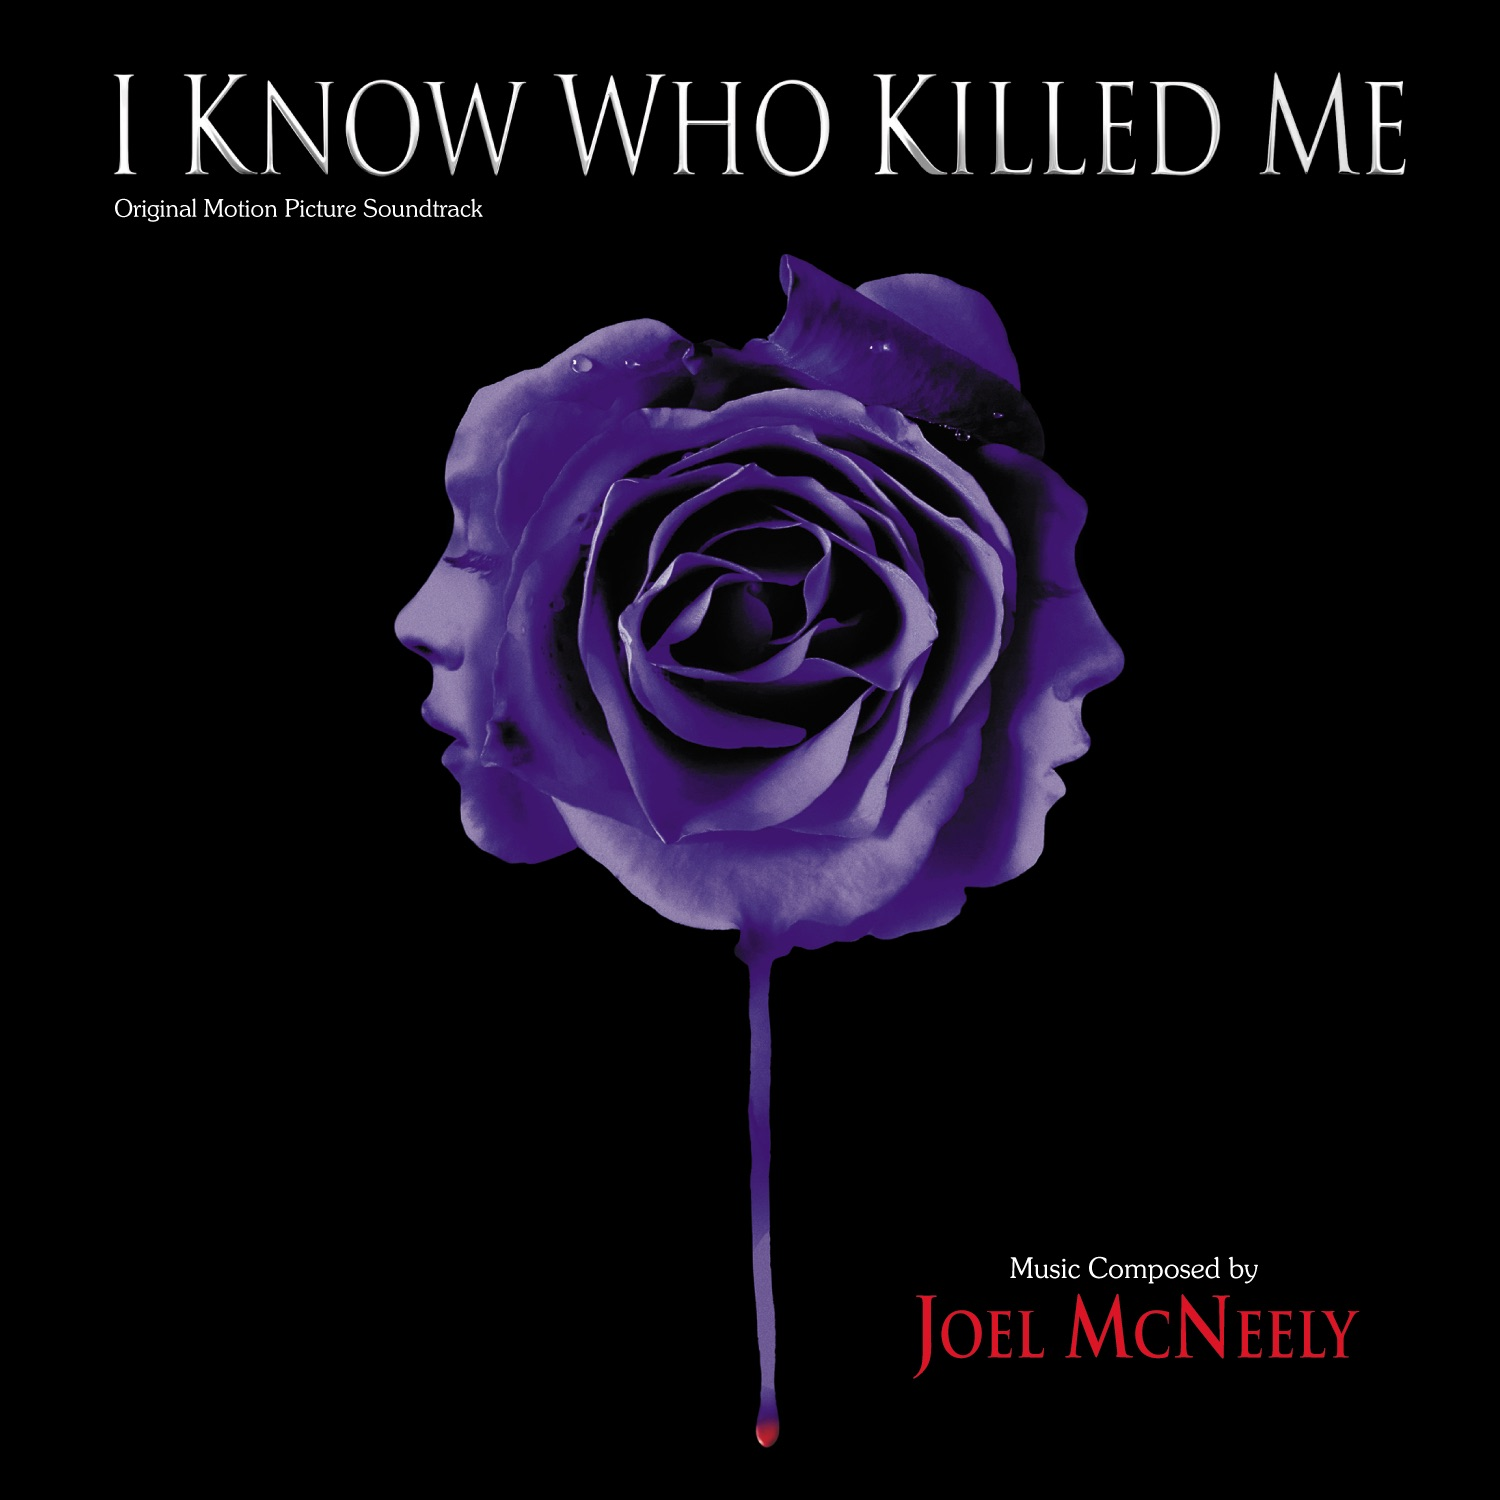 I Know Who Killed Me (Original Motion Picture Soundtrack)